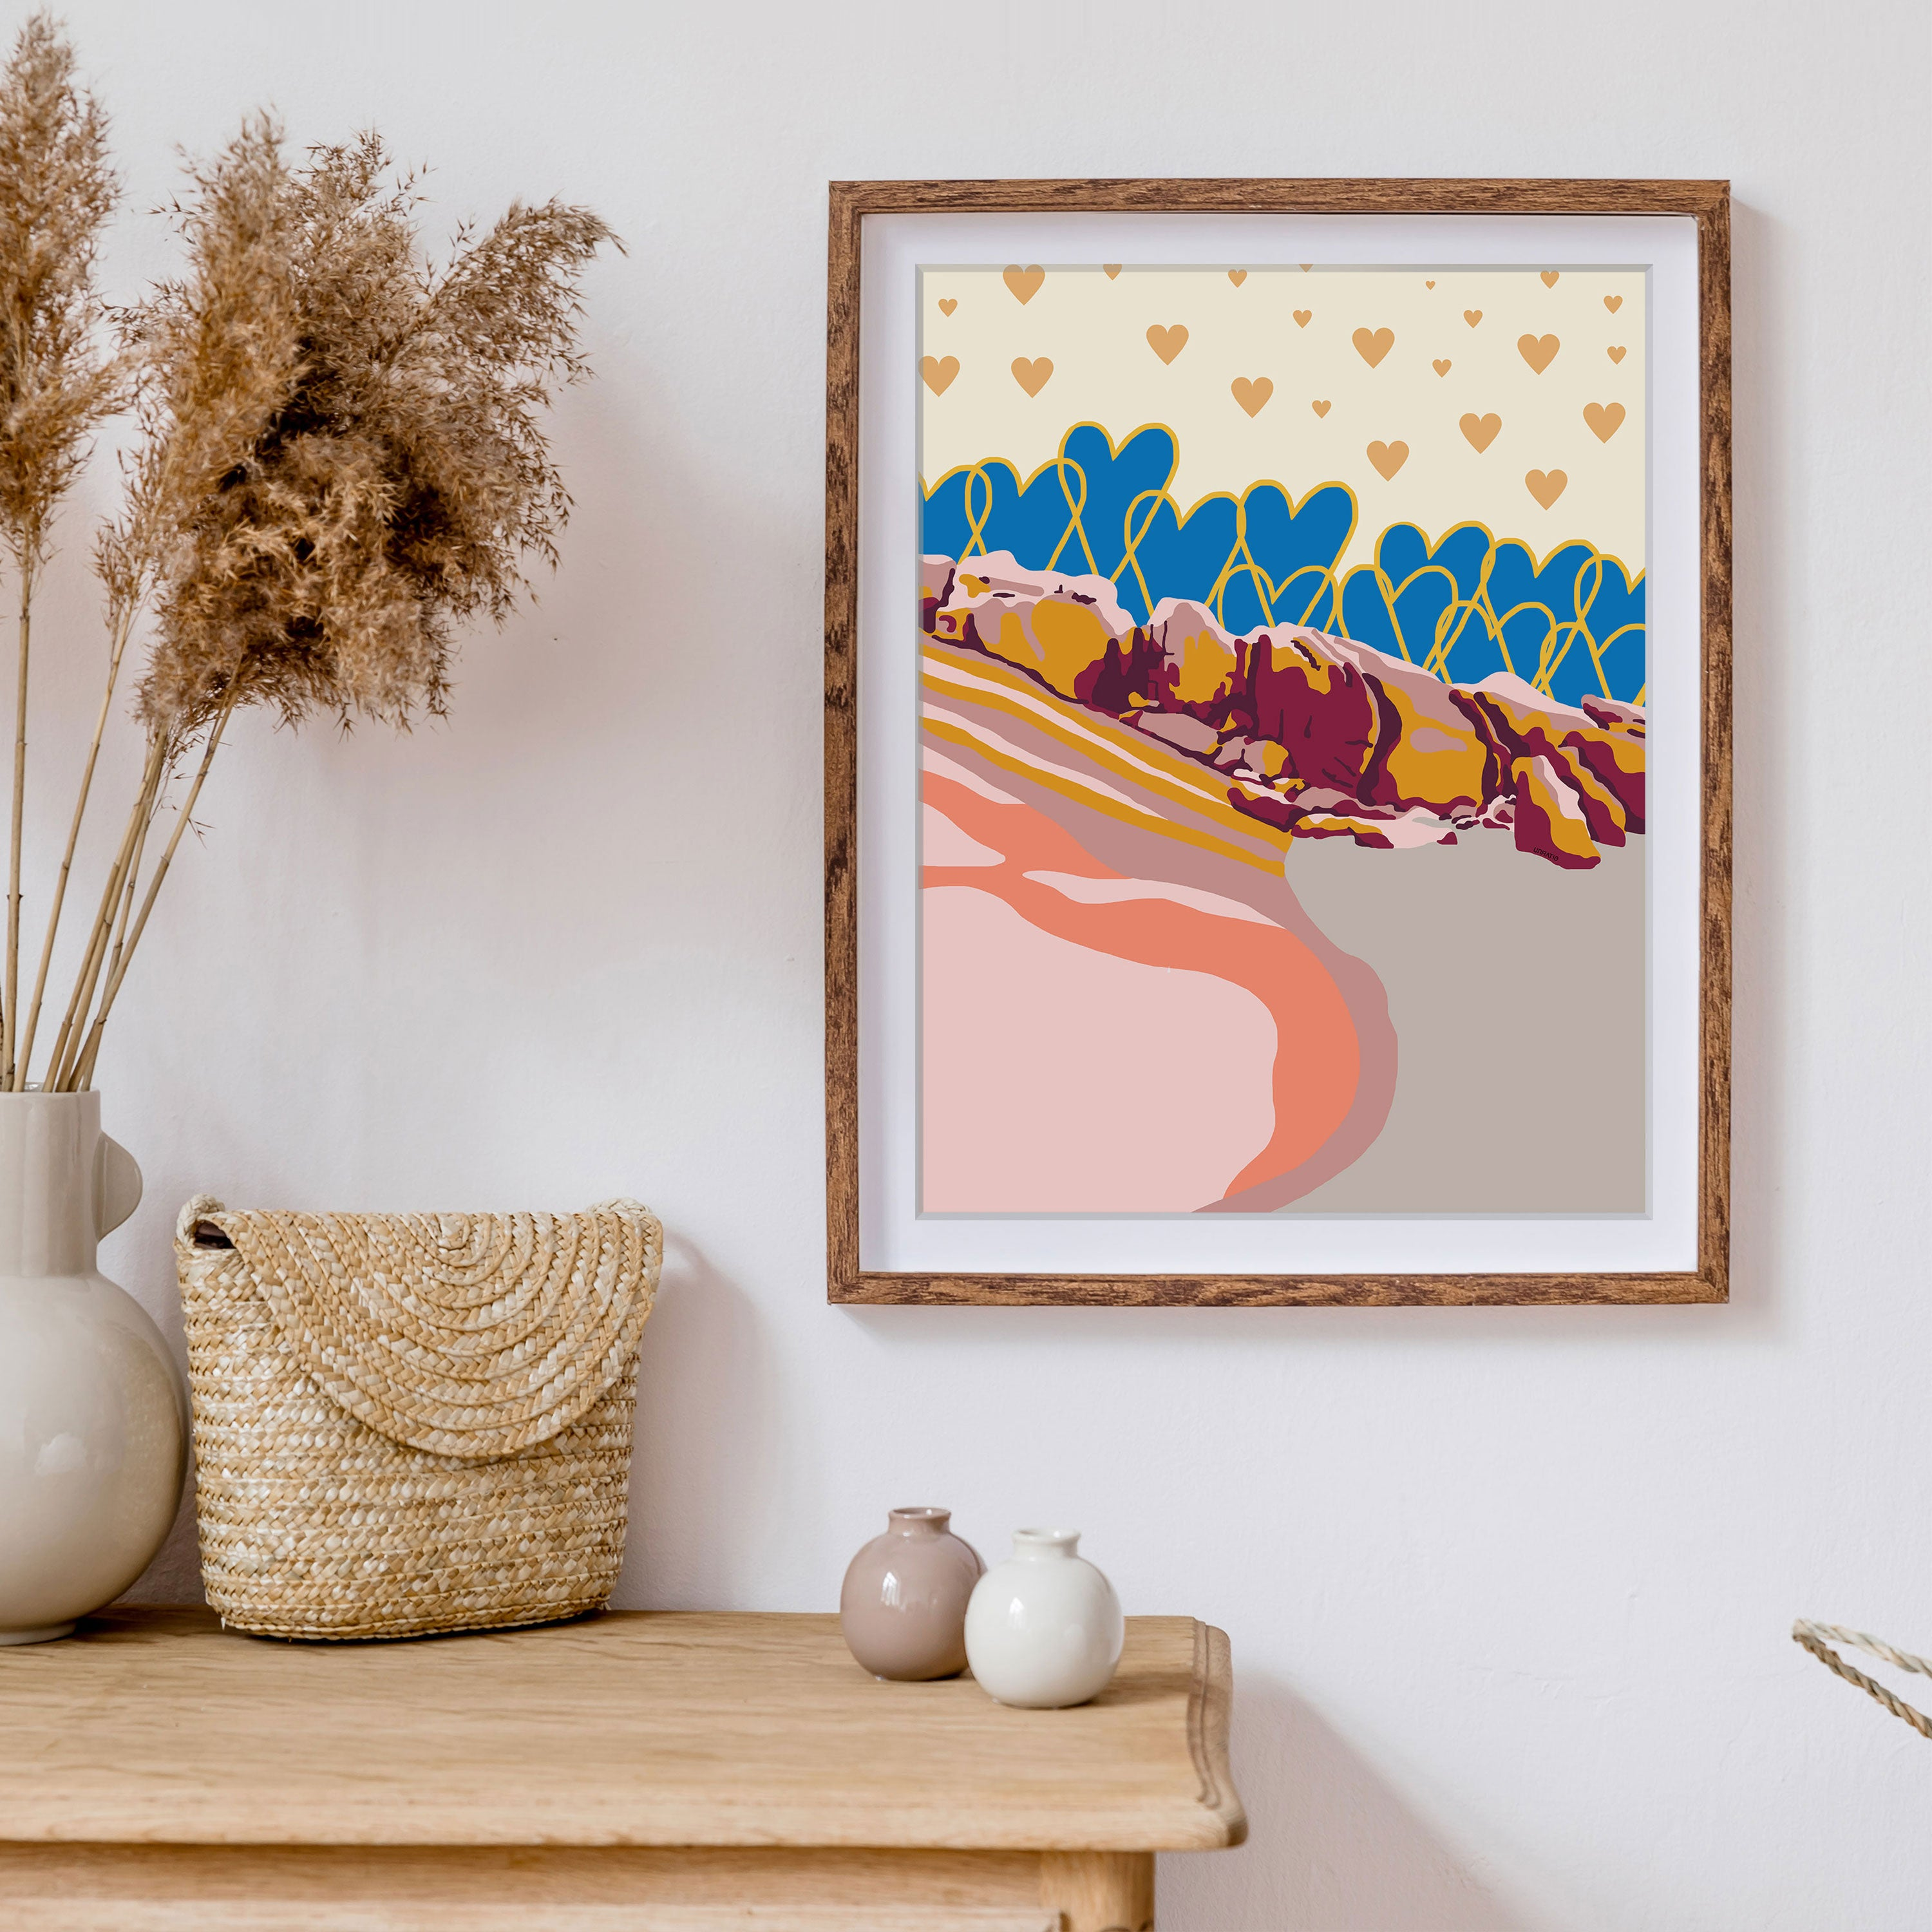 Modern beach illustration poster framed above boho natural styled cabinet